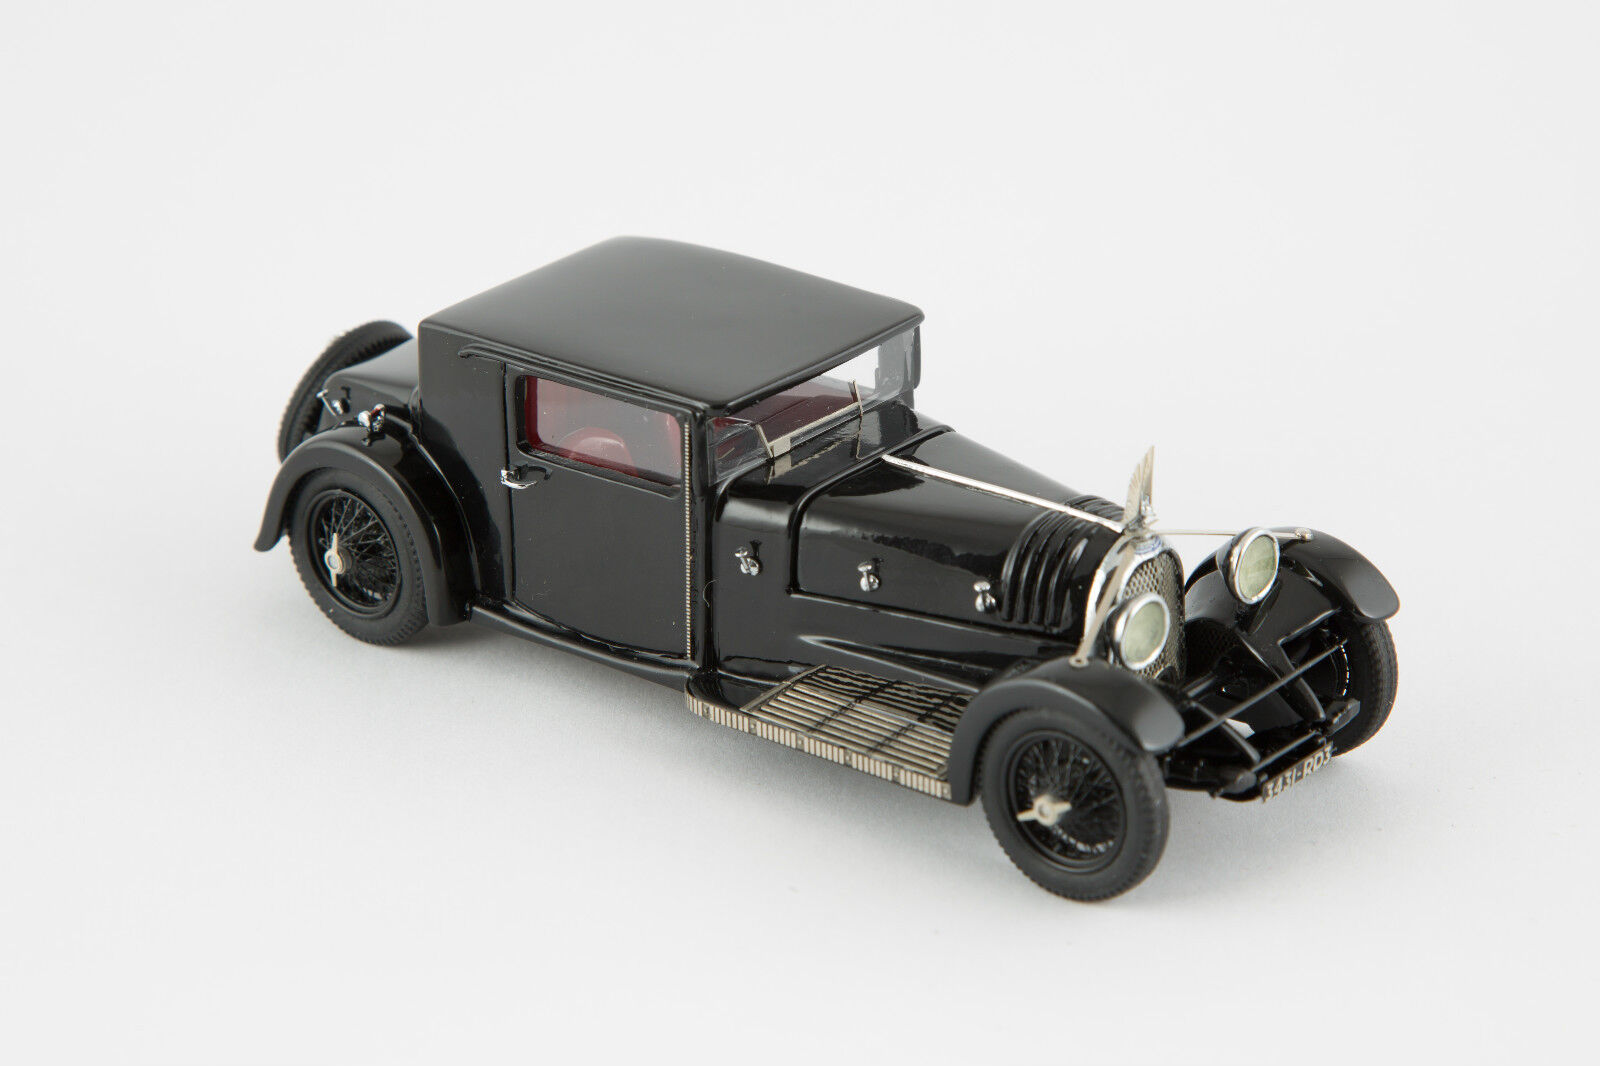 Set of Miniature Car Royal CCC  neighbouring C20 12 Cylinder Proto 1930 Ref R01